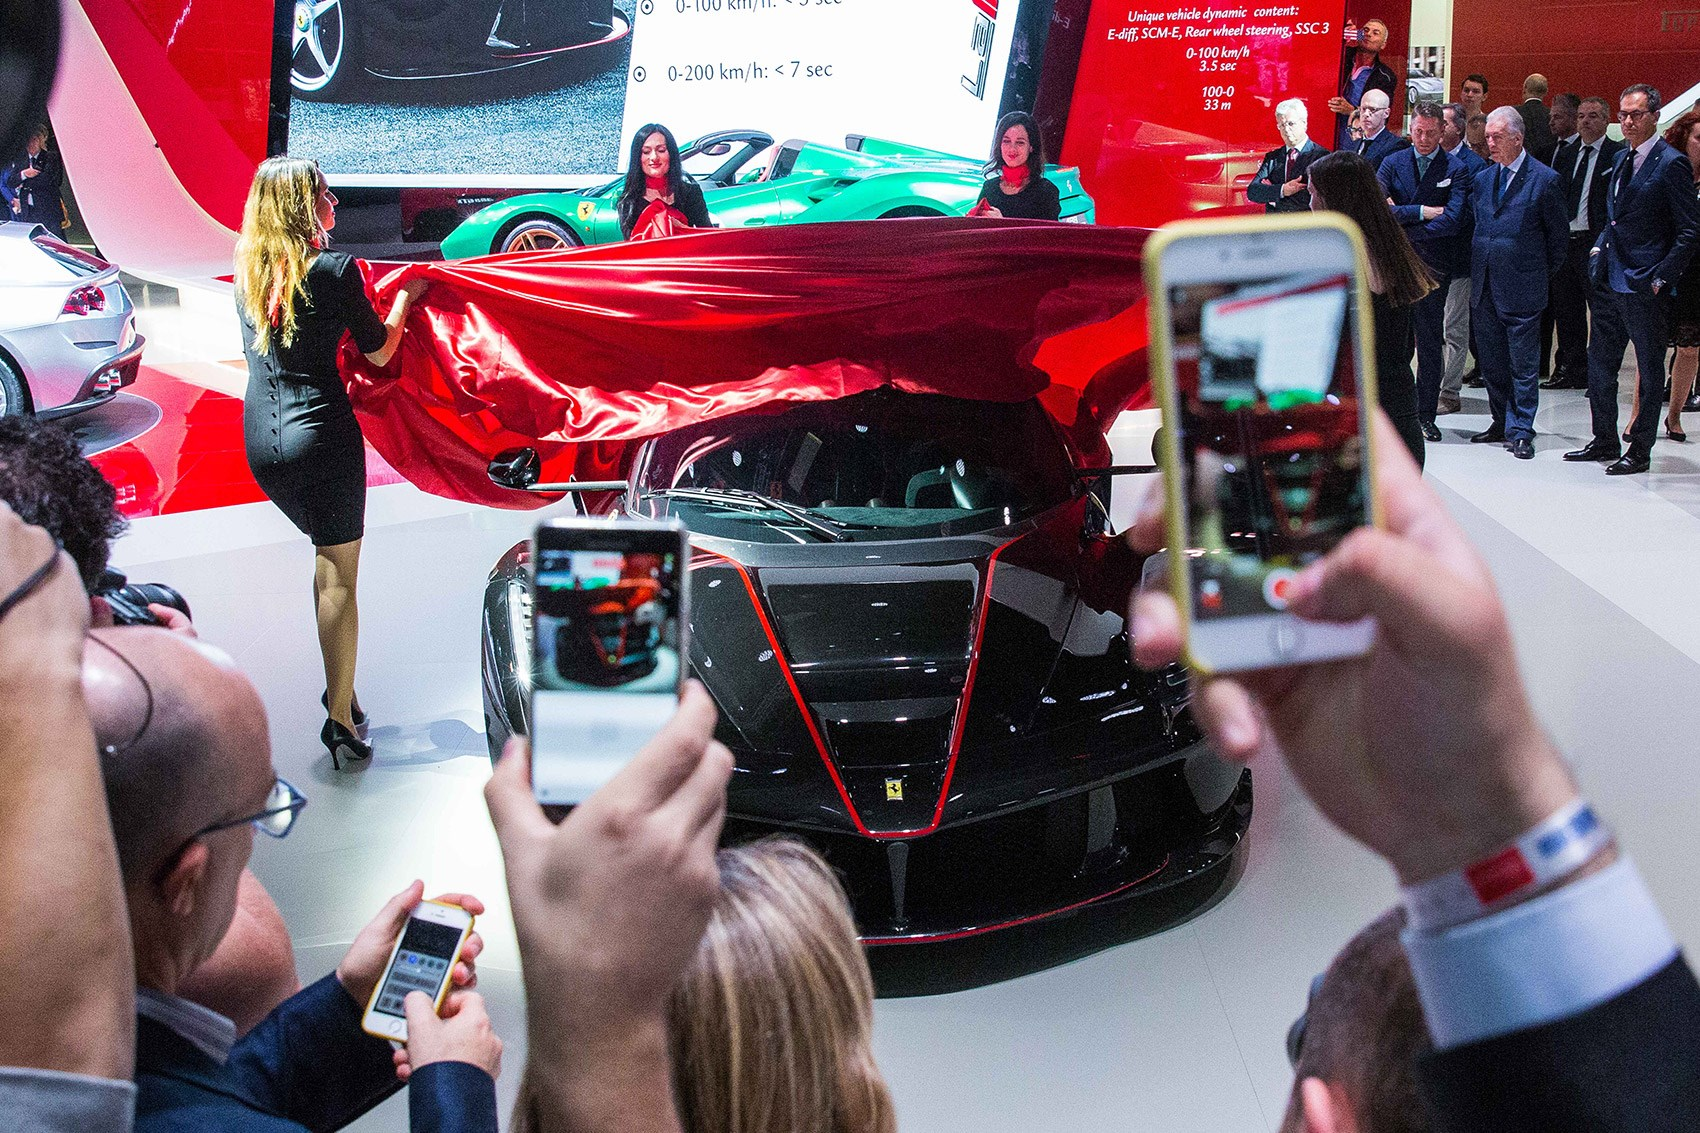 Paris motor show 2016 review: A-Z of all the new cars by CAR Magazine